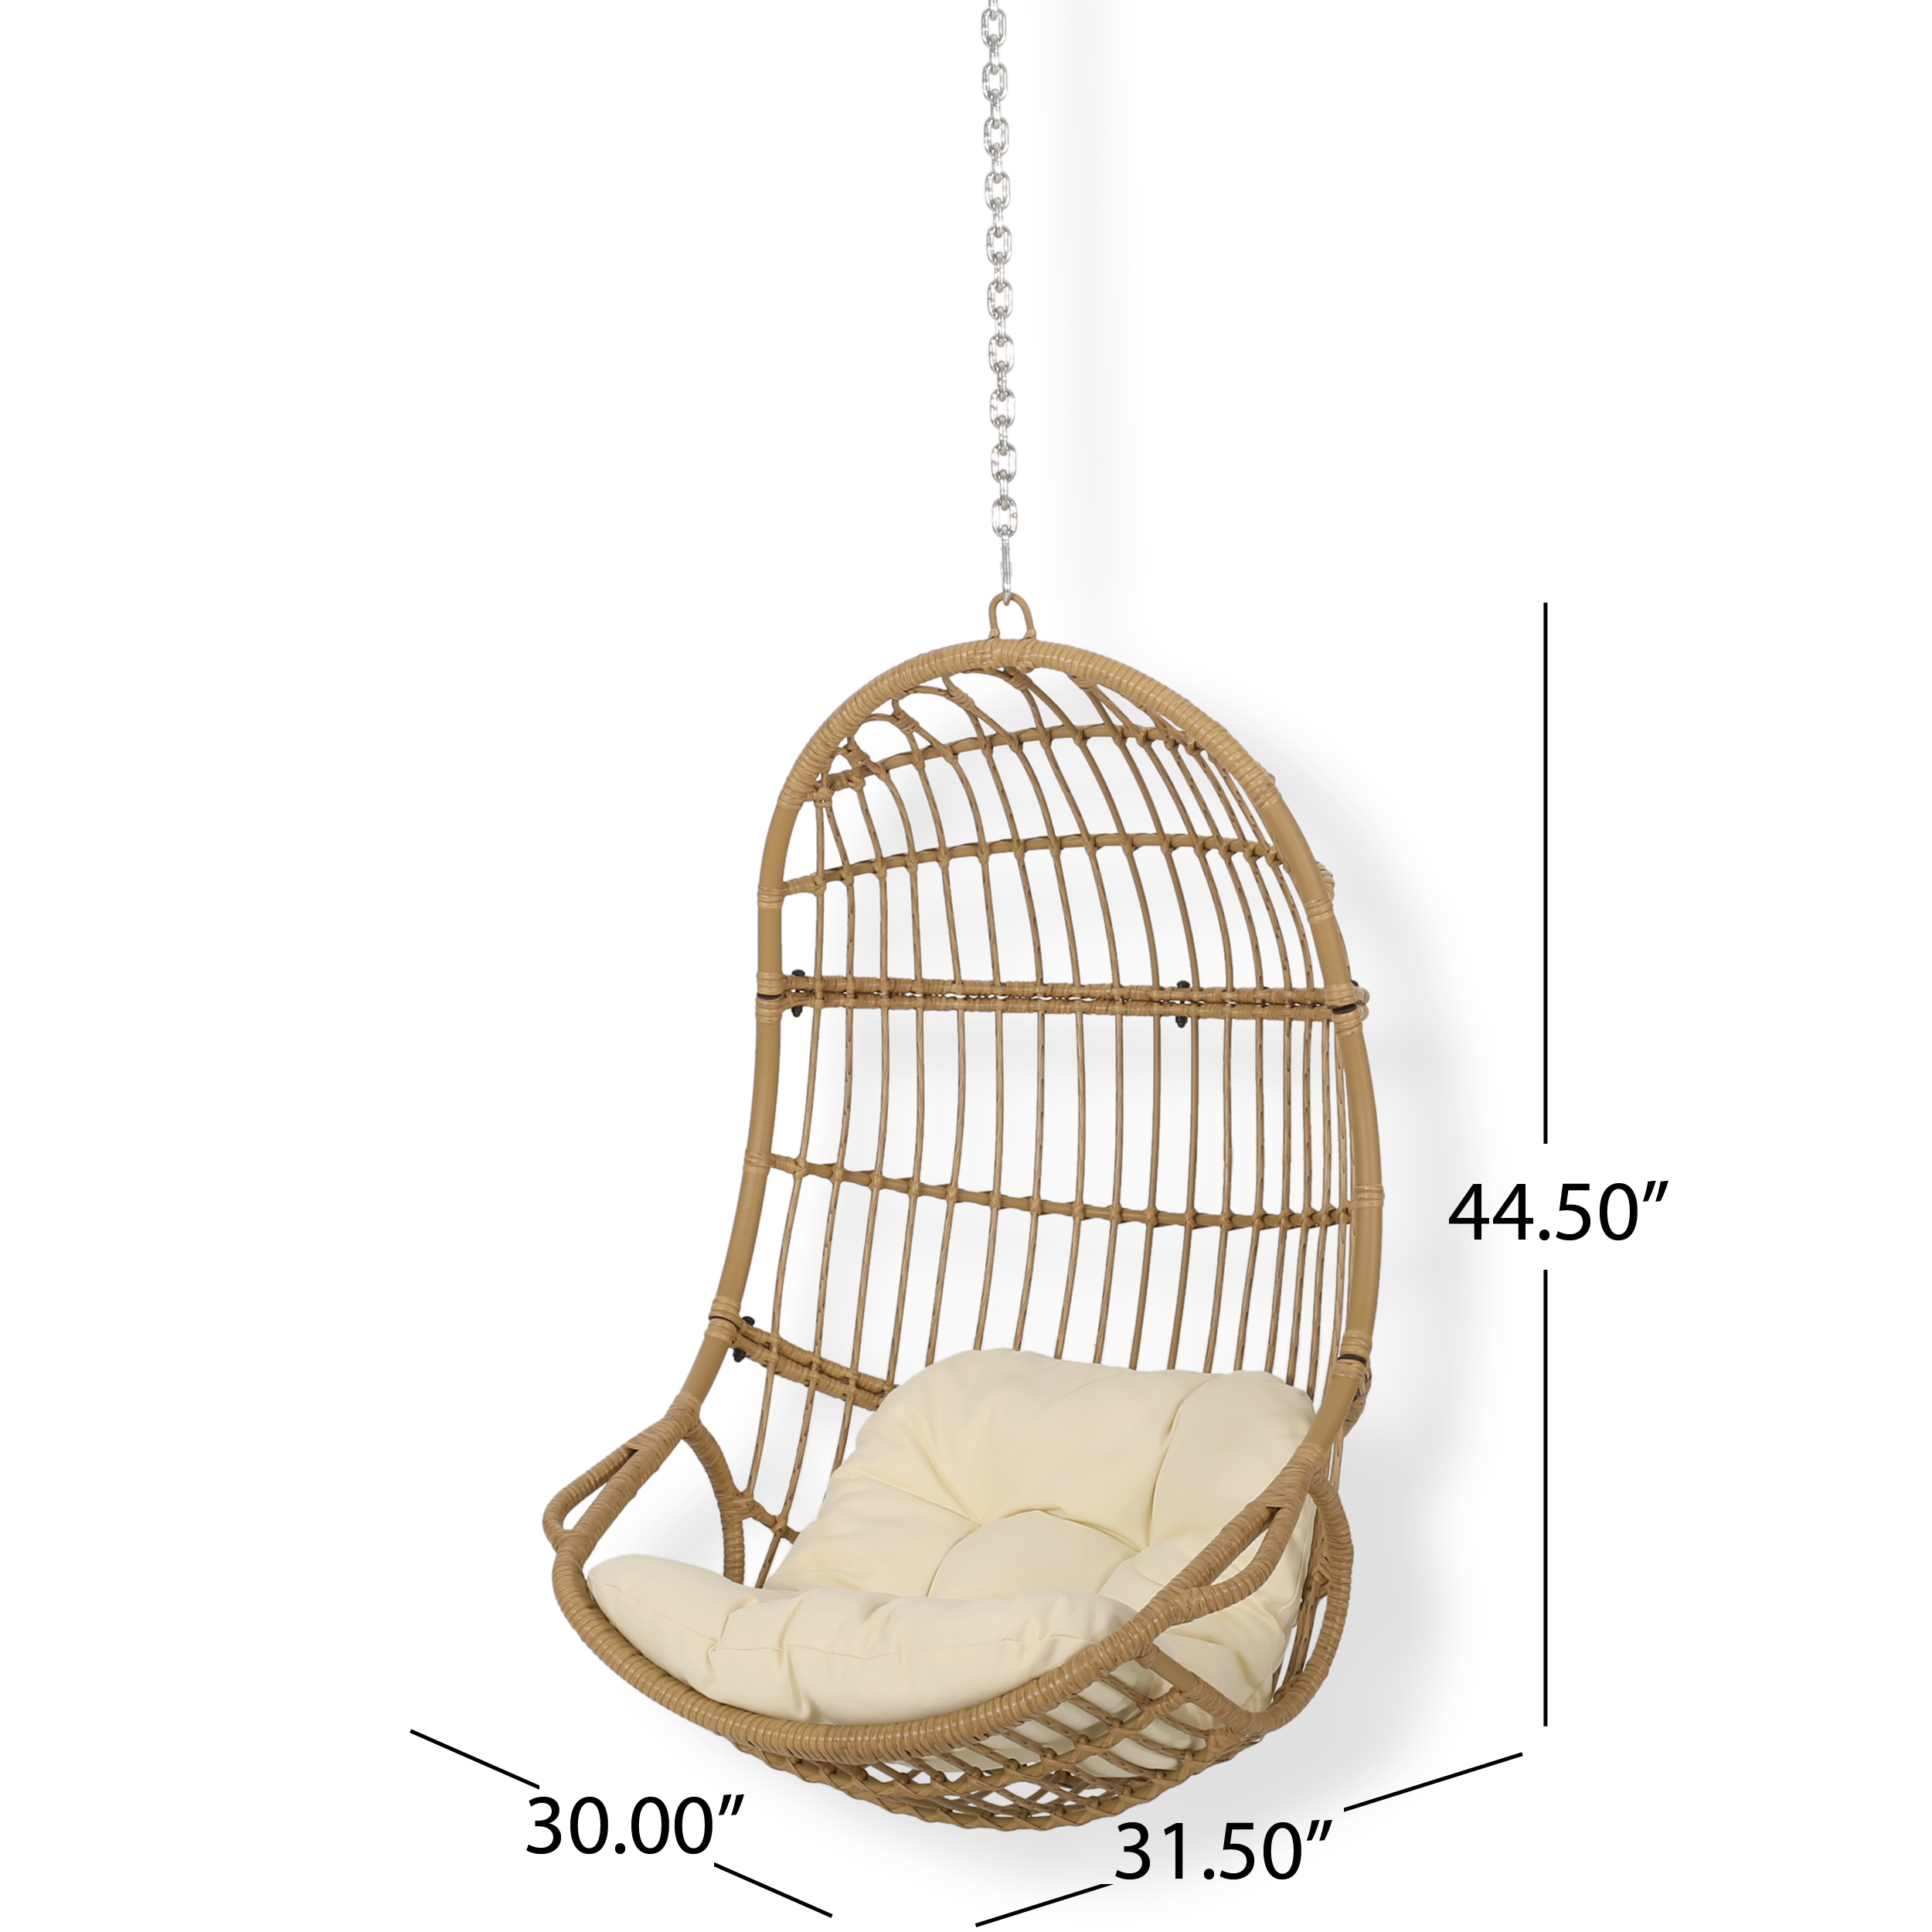 Ottawa Outdoor Indoor Wicker Hanging Chair With 8 Foot Chain No Stand Light Brown And Beige Walmart Com Walmart Com